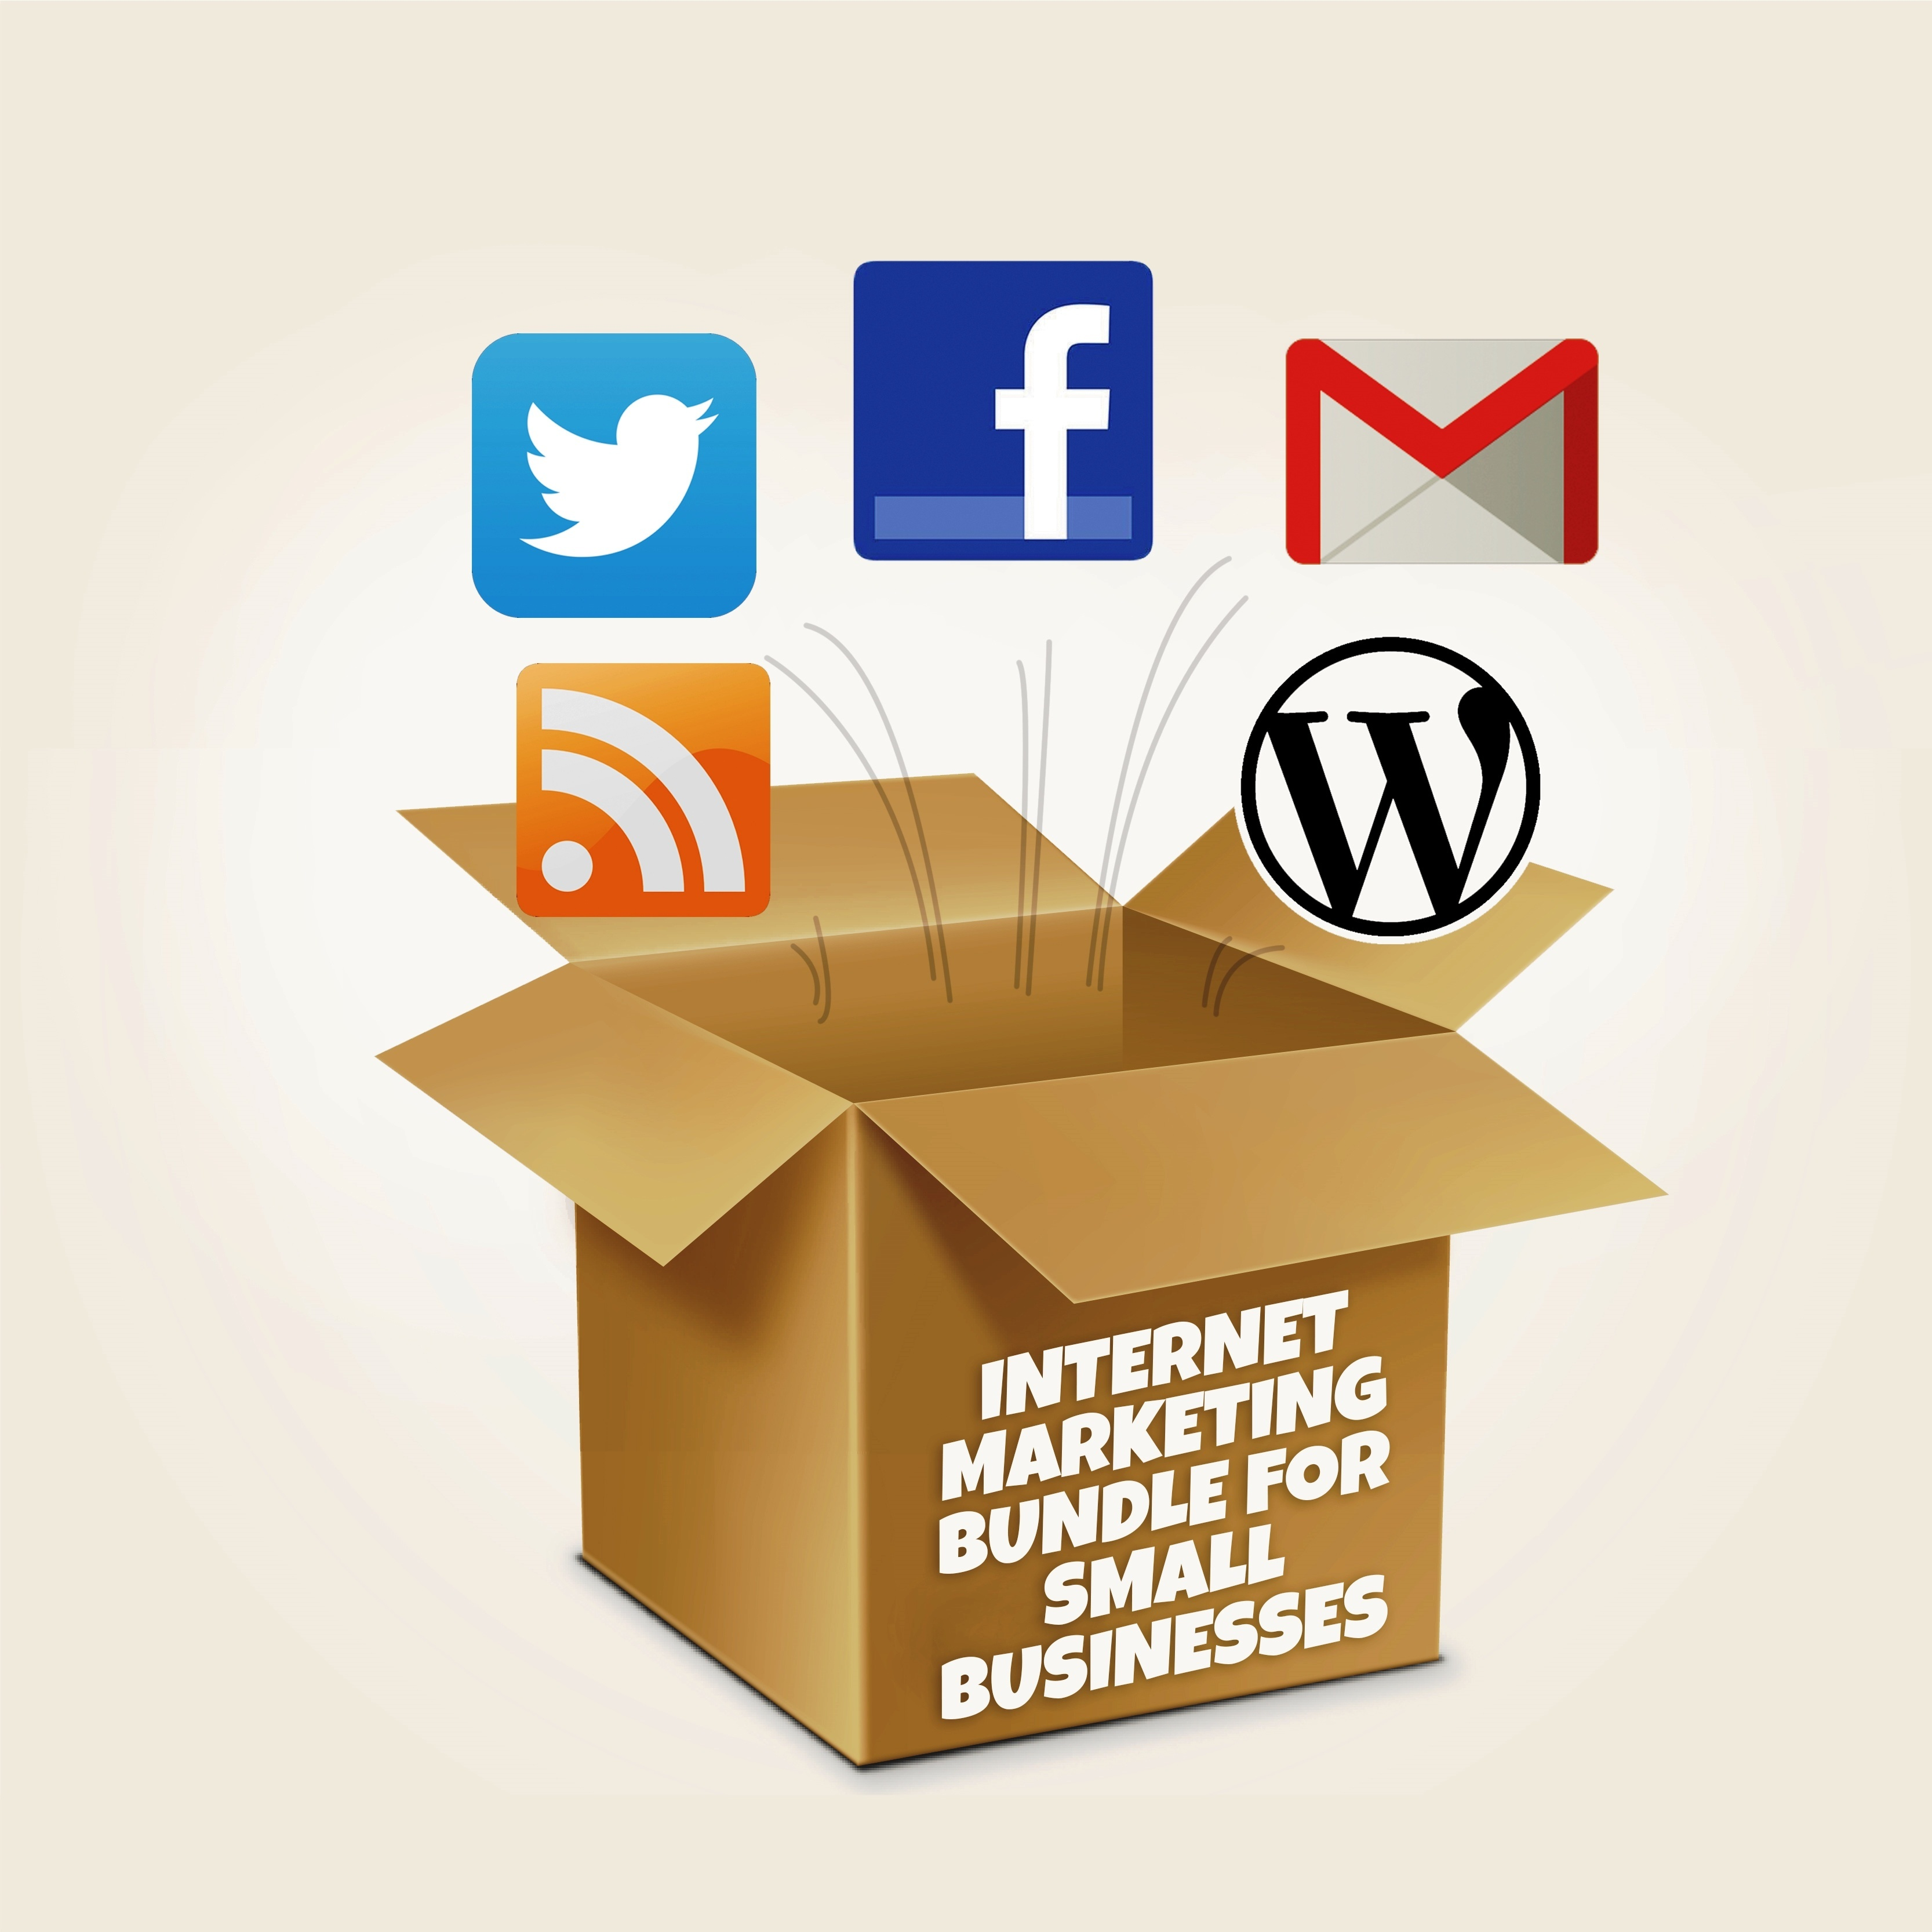 internet marketing bundle for small businesses